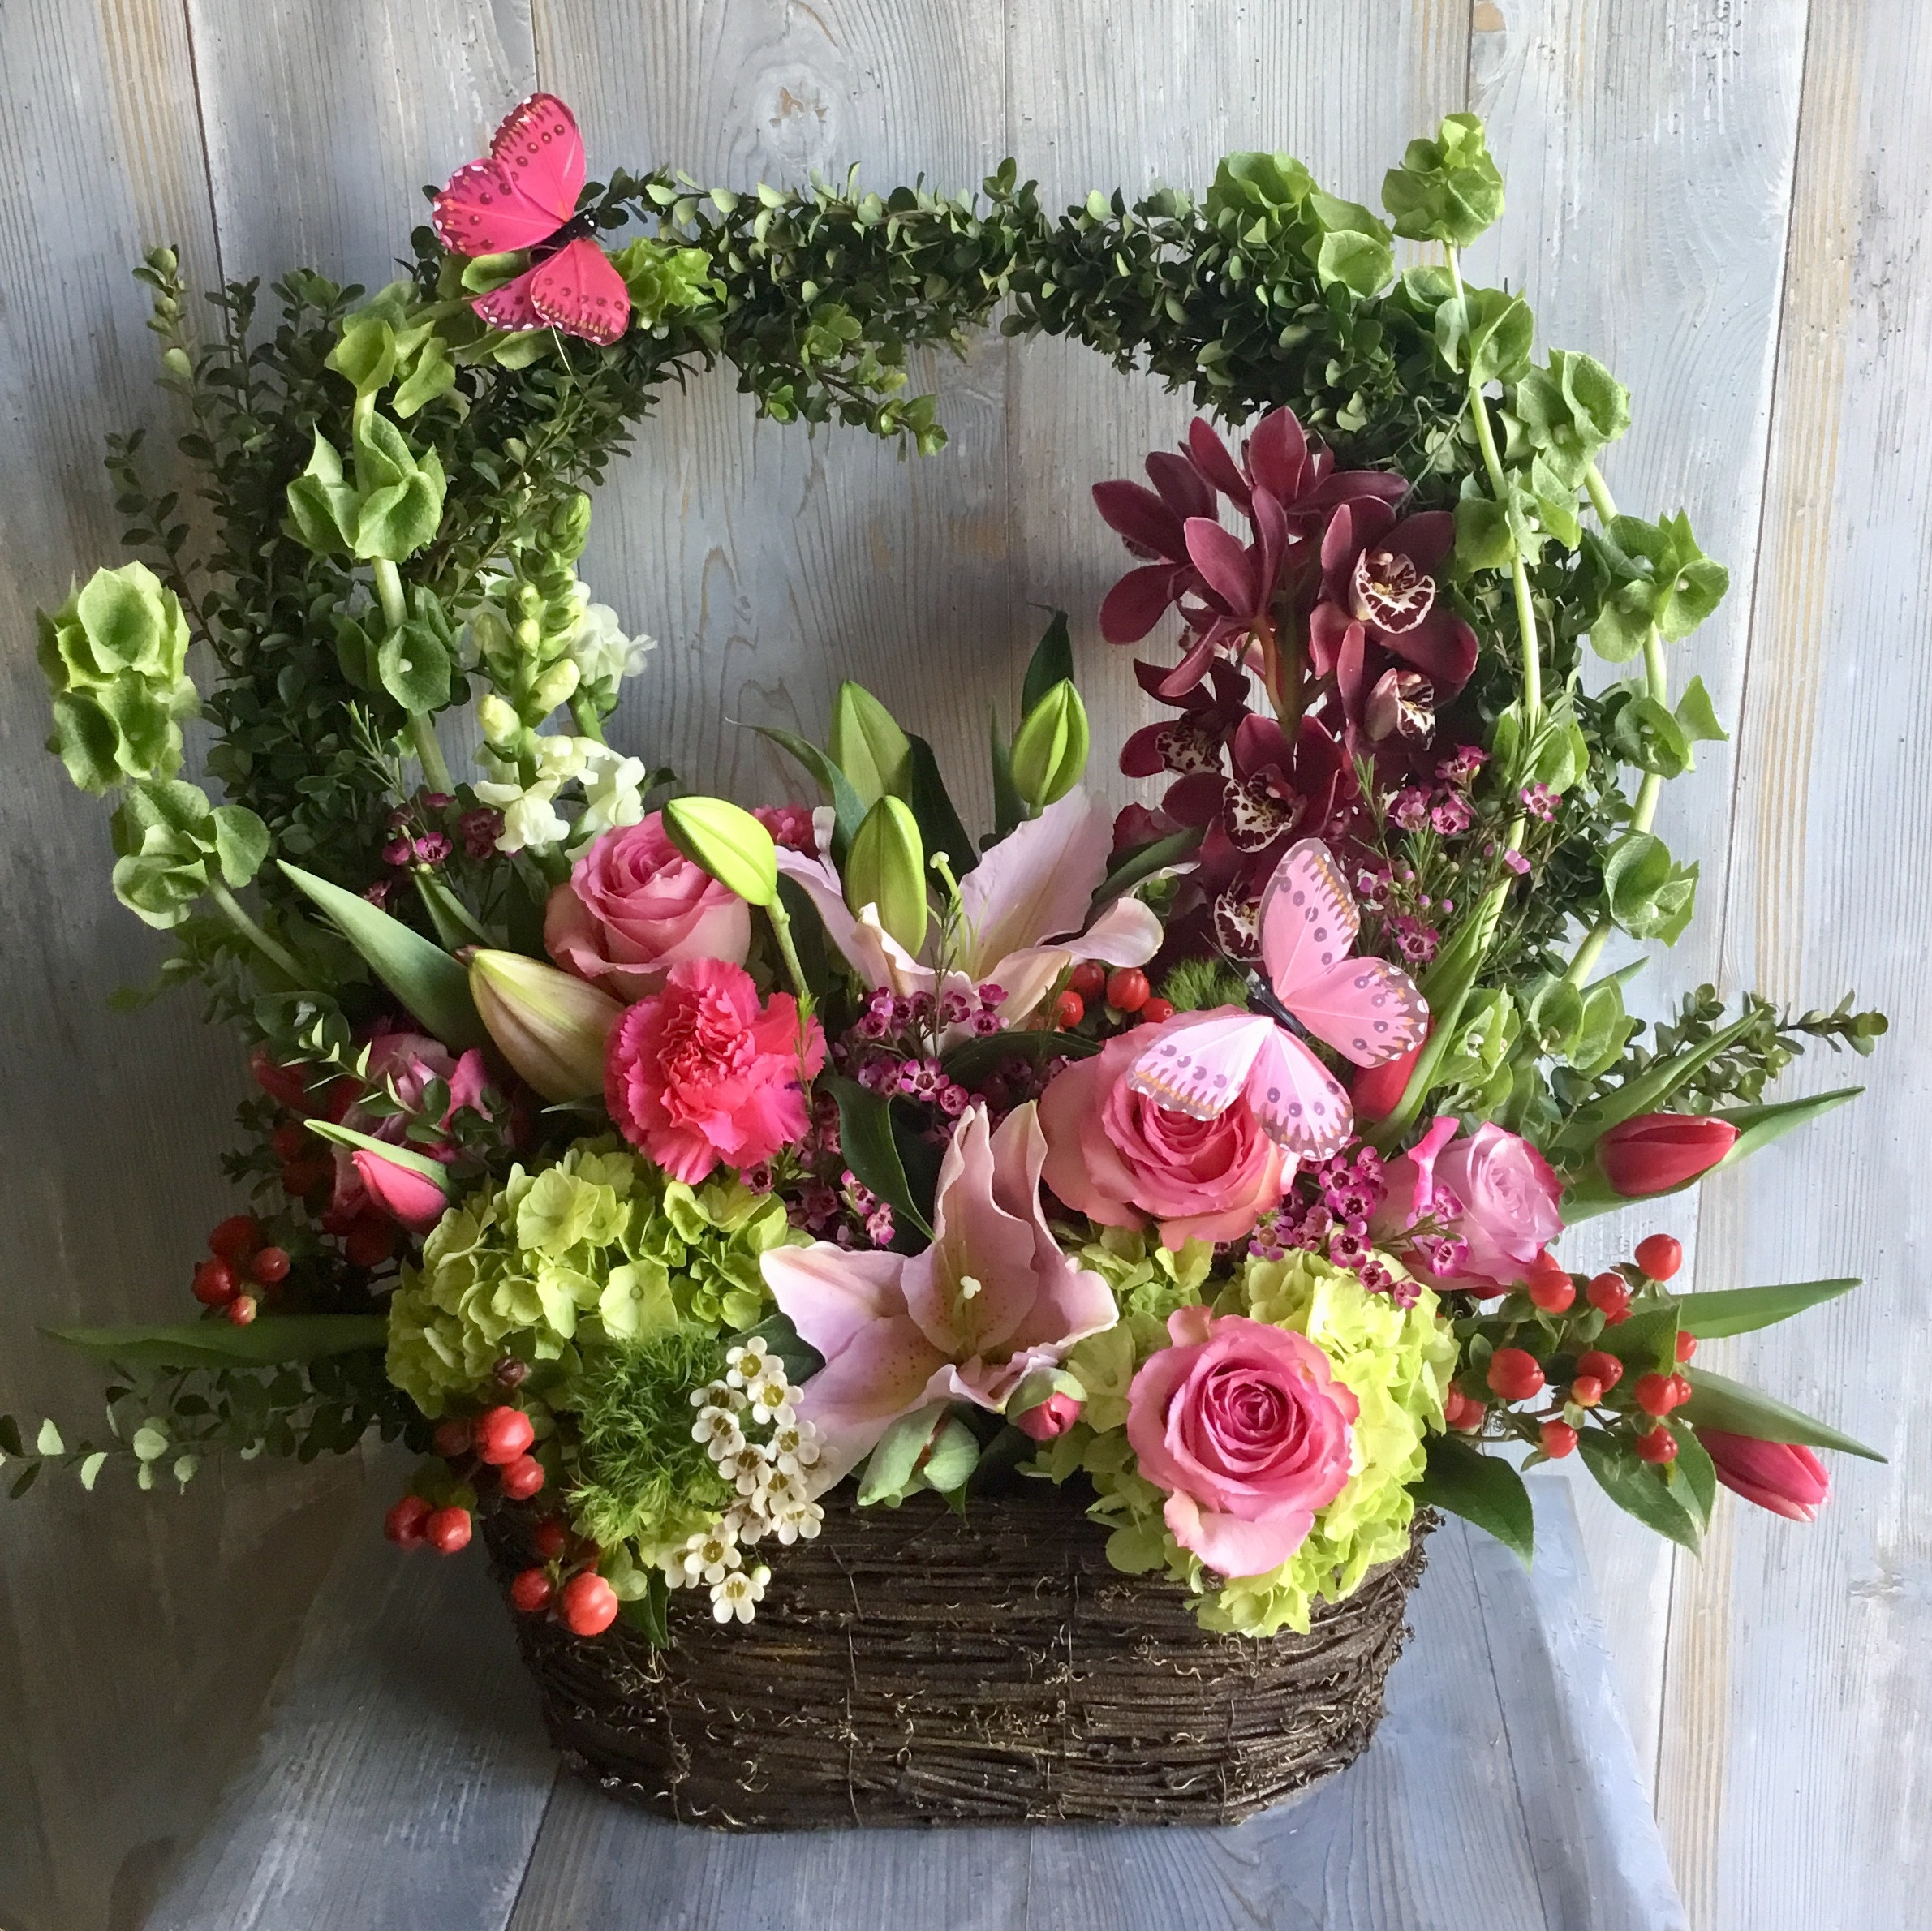 Spring Time Colorful Archway Basket